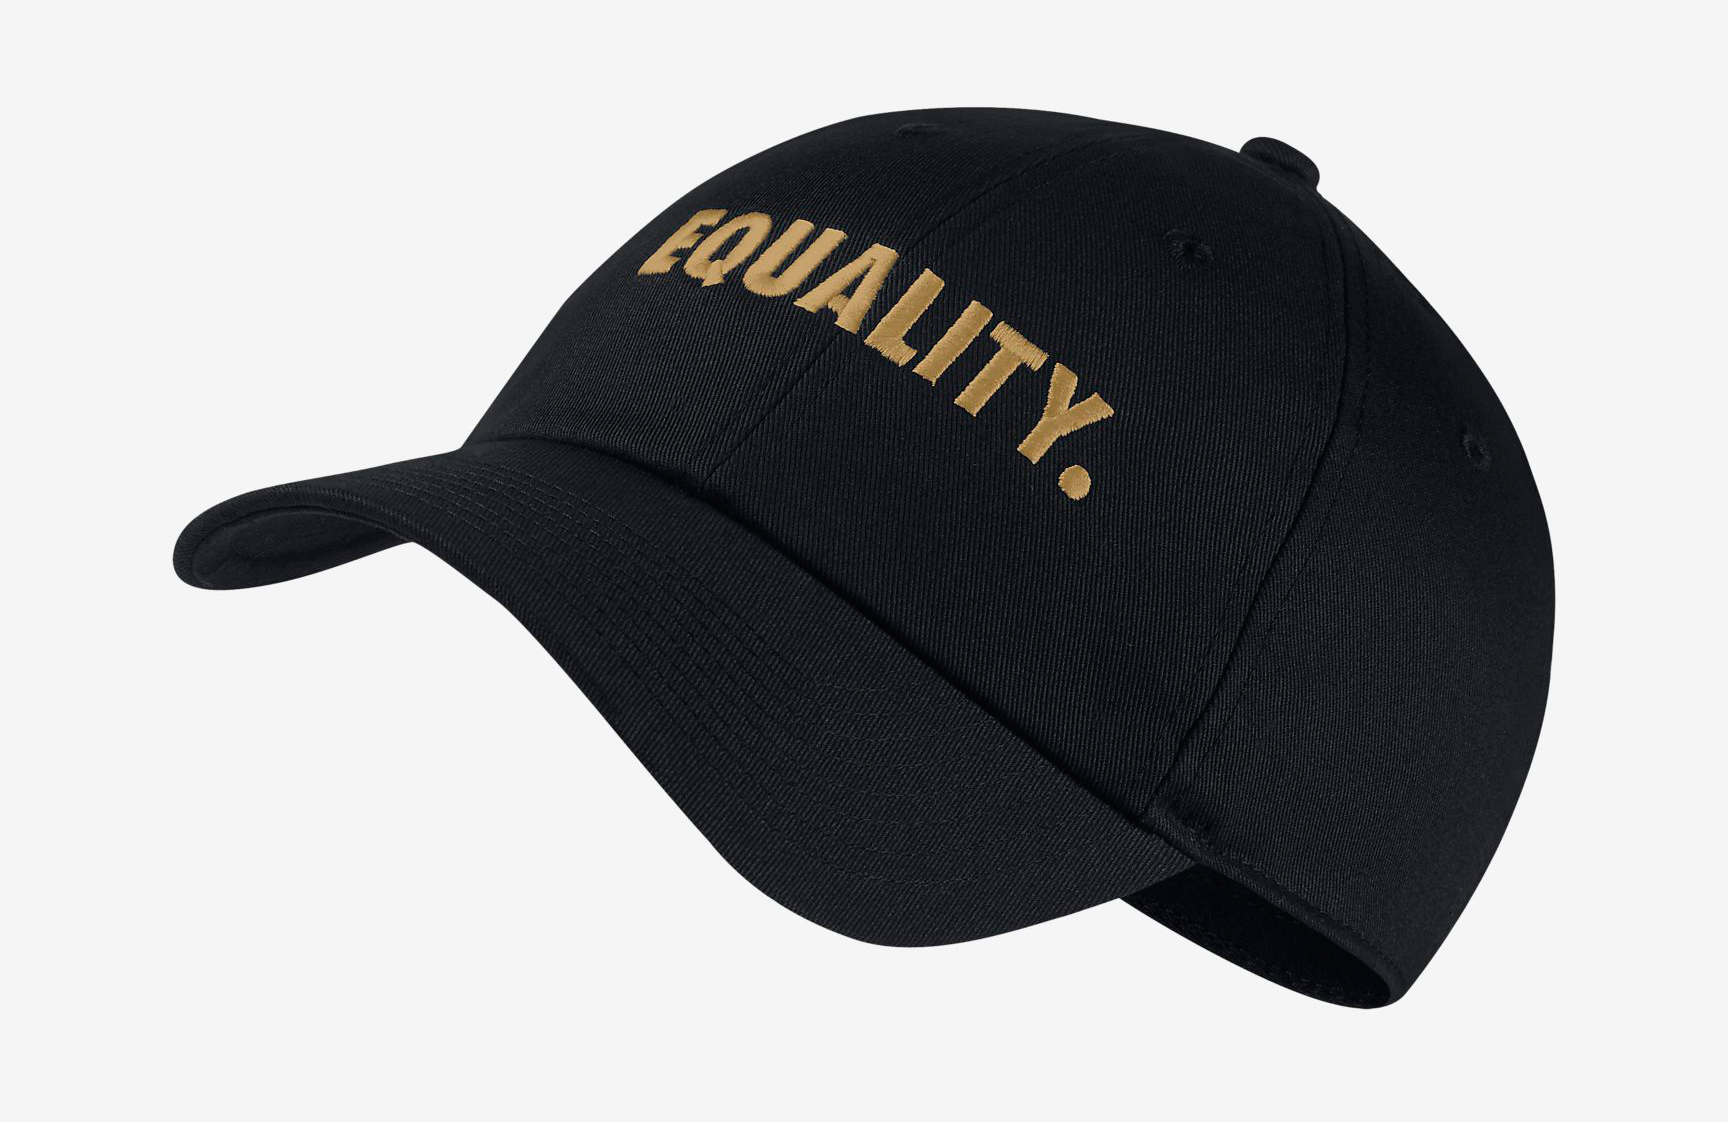 ccf22e647d827 ... canada nike equality black gold hat 1 a62c6 d39bd